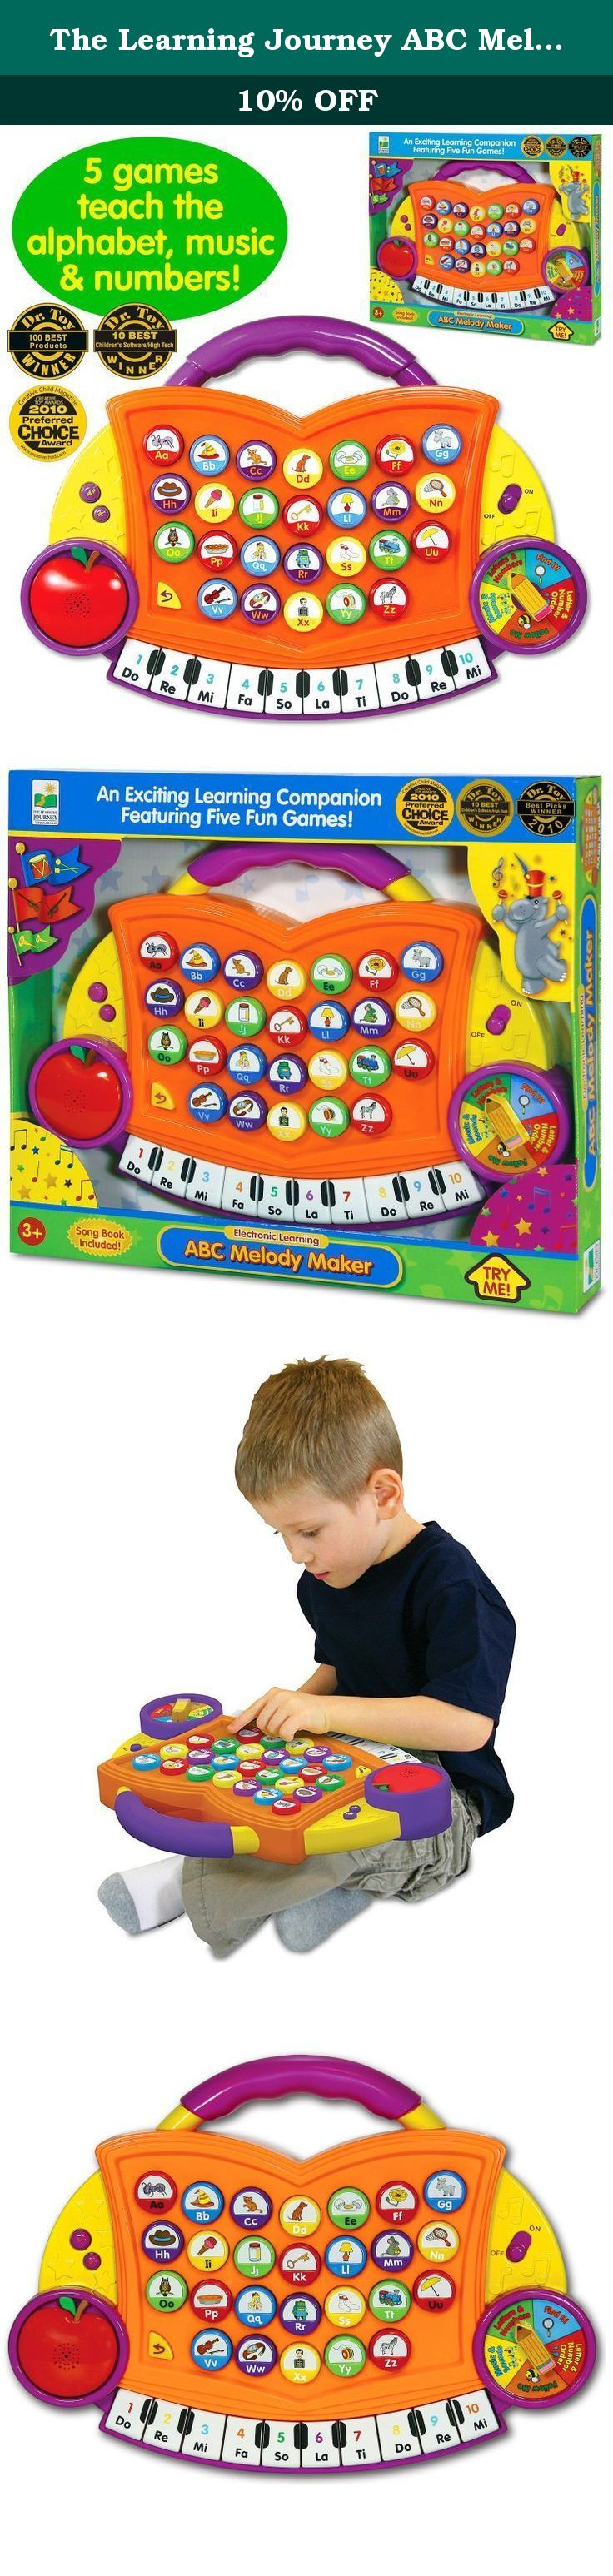 The Learning Journey ABC Melody Maker ABC Melody Maker is an